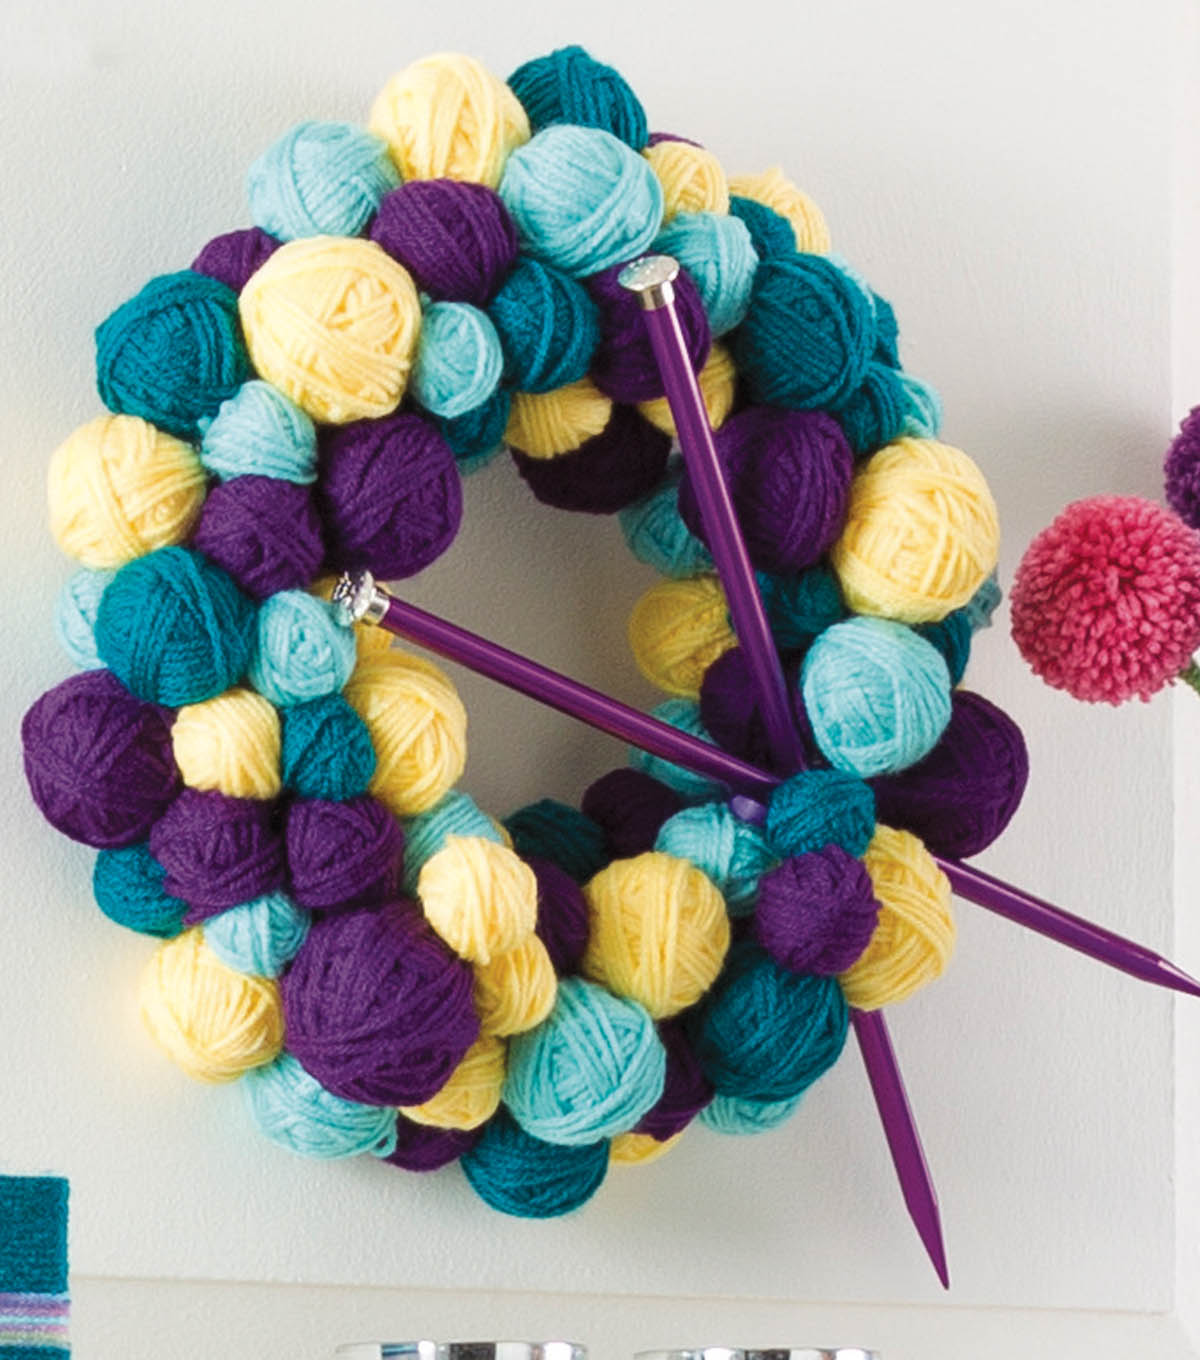 Wreath of Yarn Balls